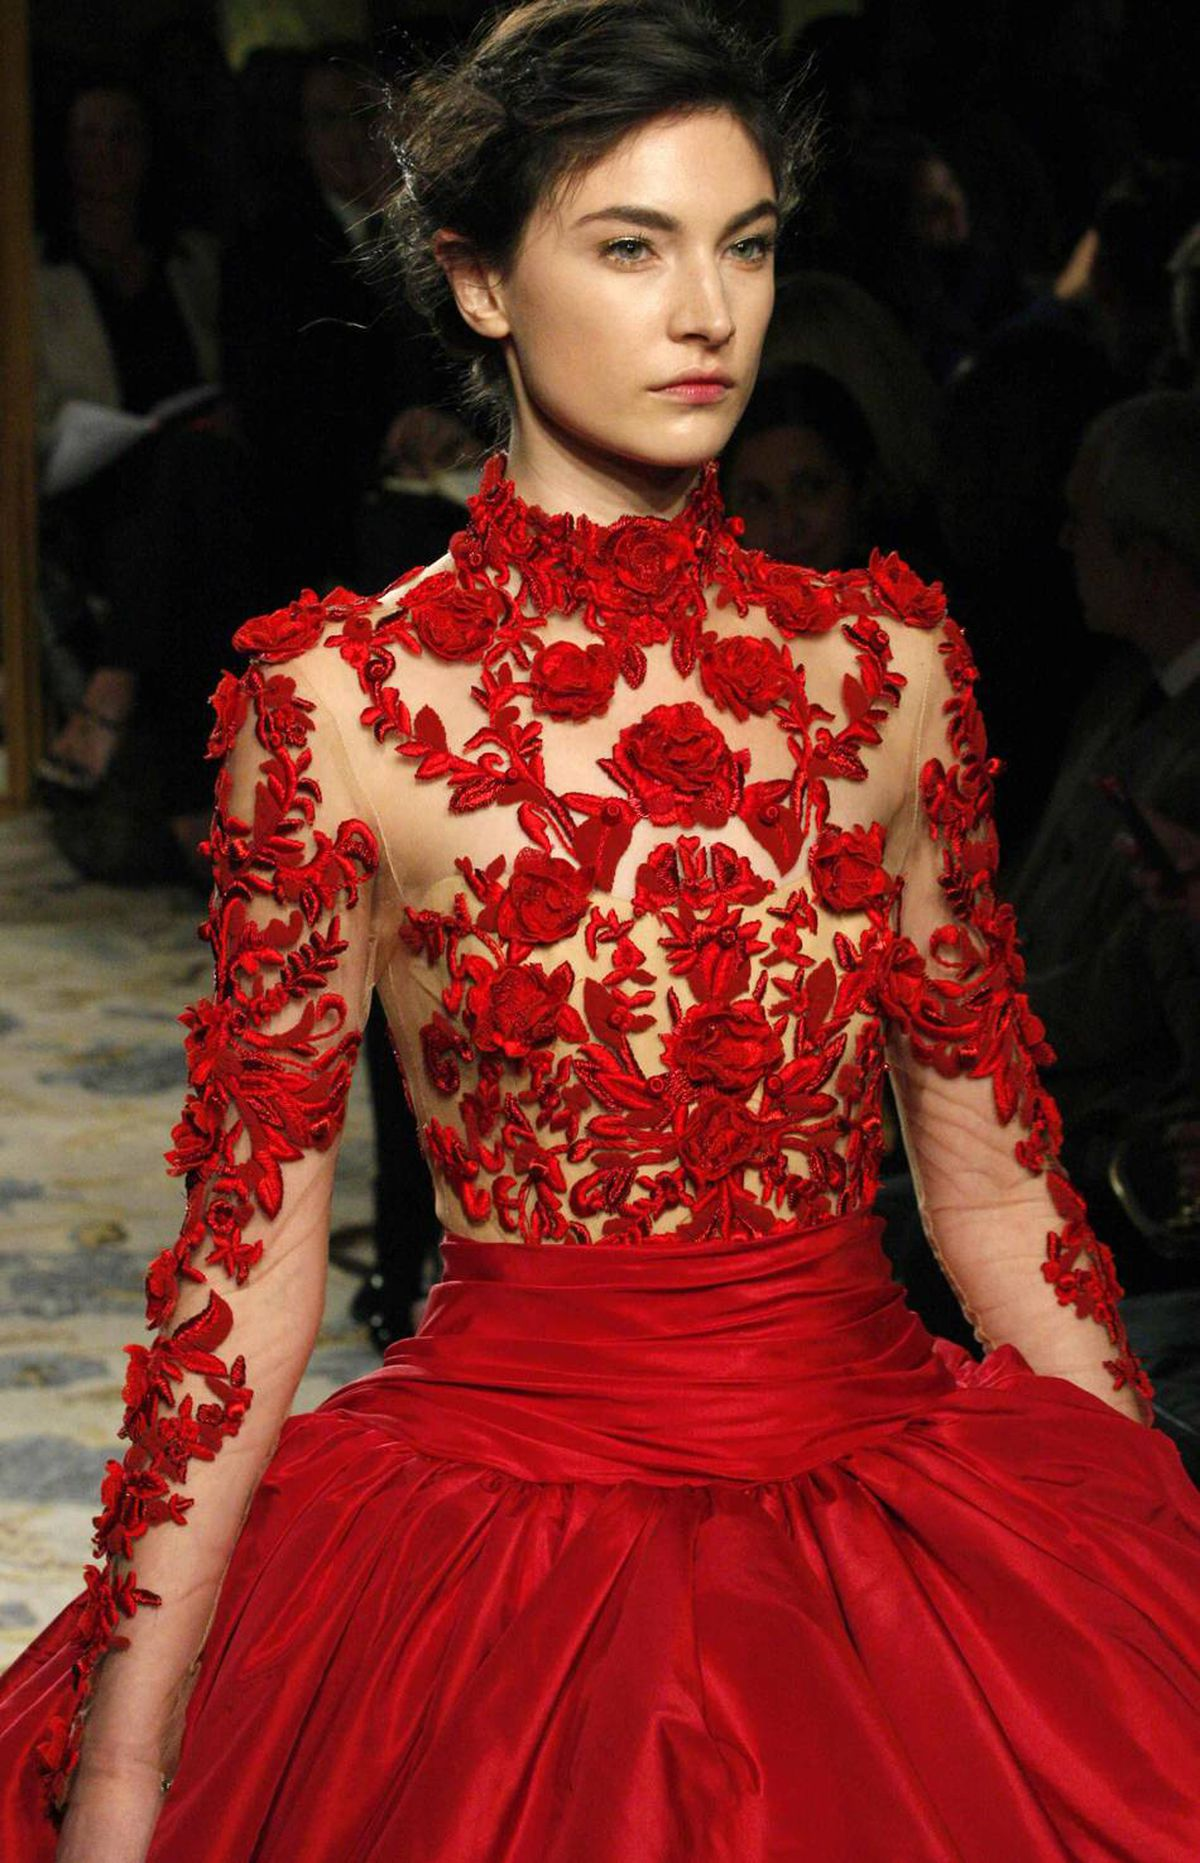 Am I the only one who looked at this gown and pictured the bathtub scene in American Beauty?